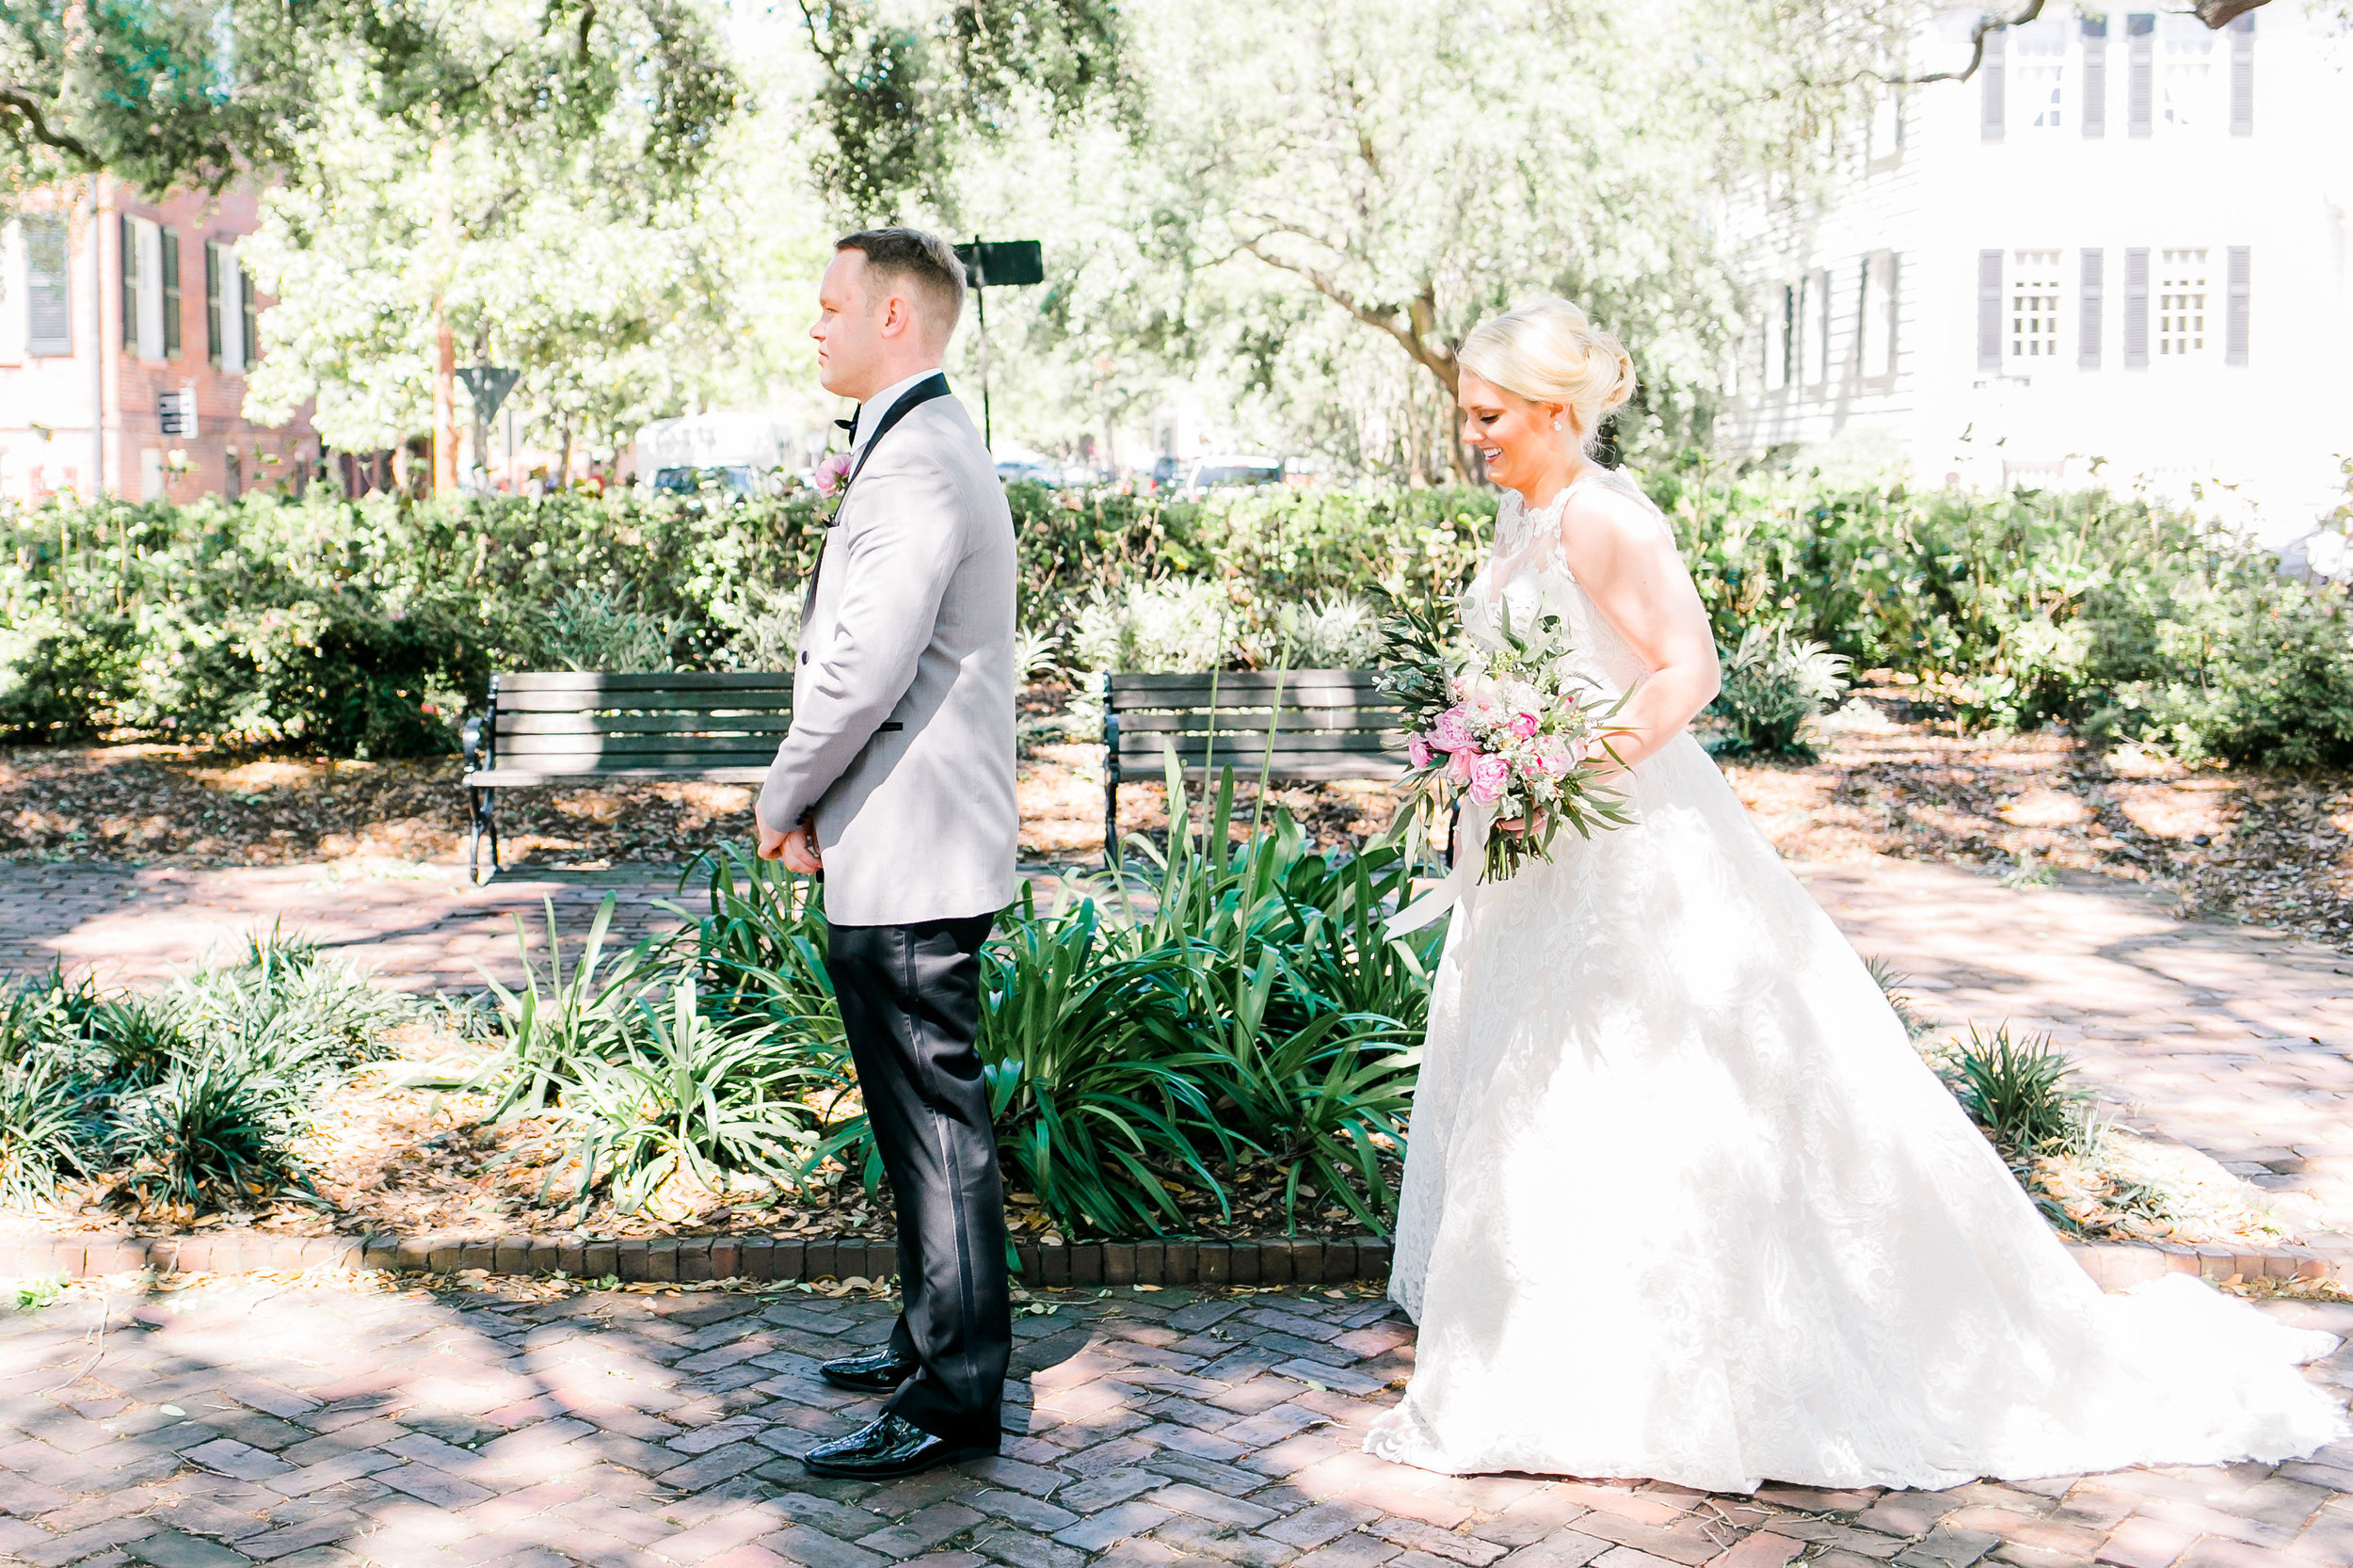 Bride & Groom's first look in Savannah GA square  //  photos by JB Marie Photography